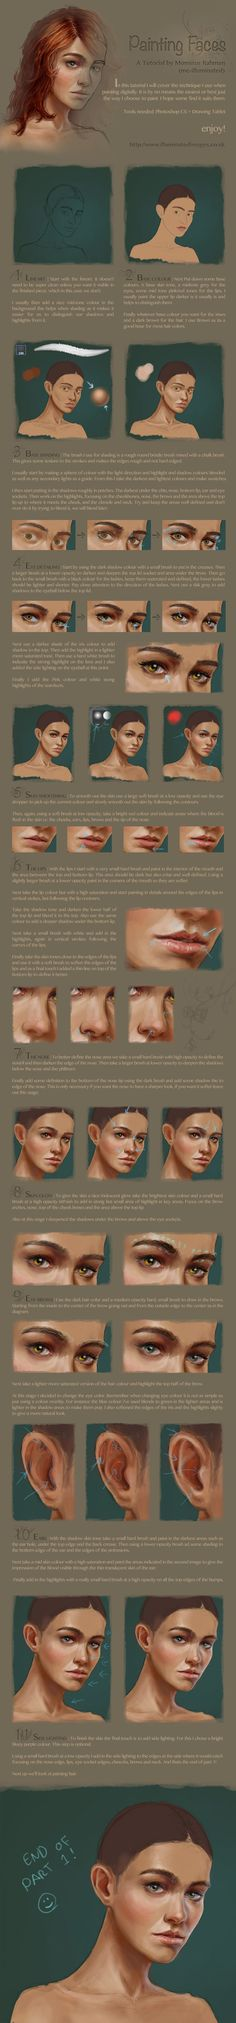 Digital face / portrait painting tutorial part 1 by me-illuminated.deviantart.com on @deviantART